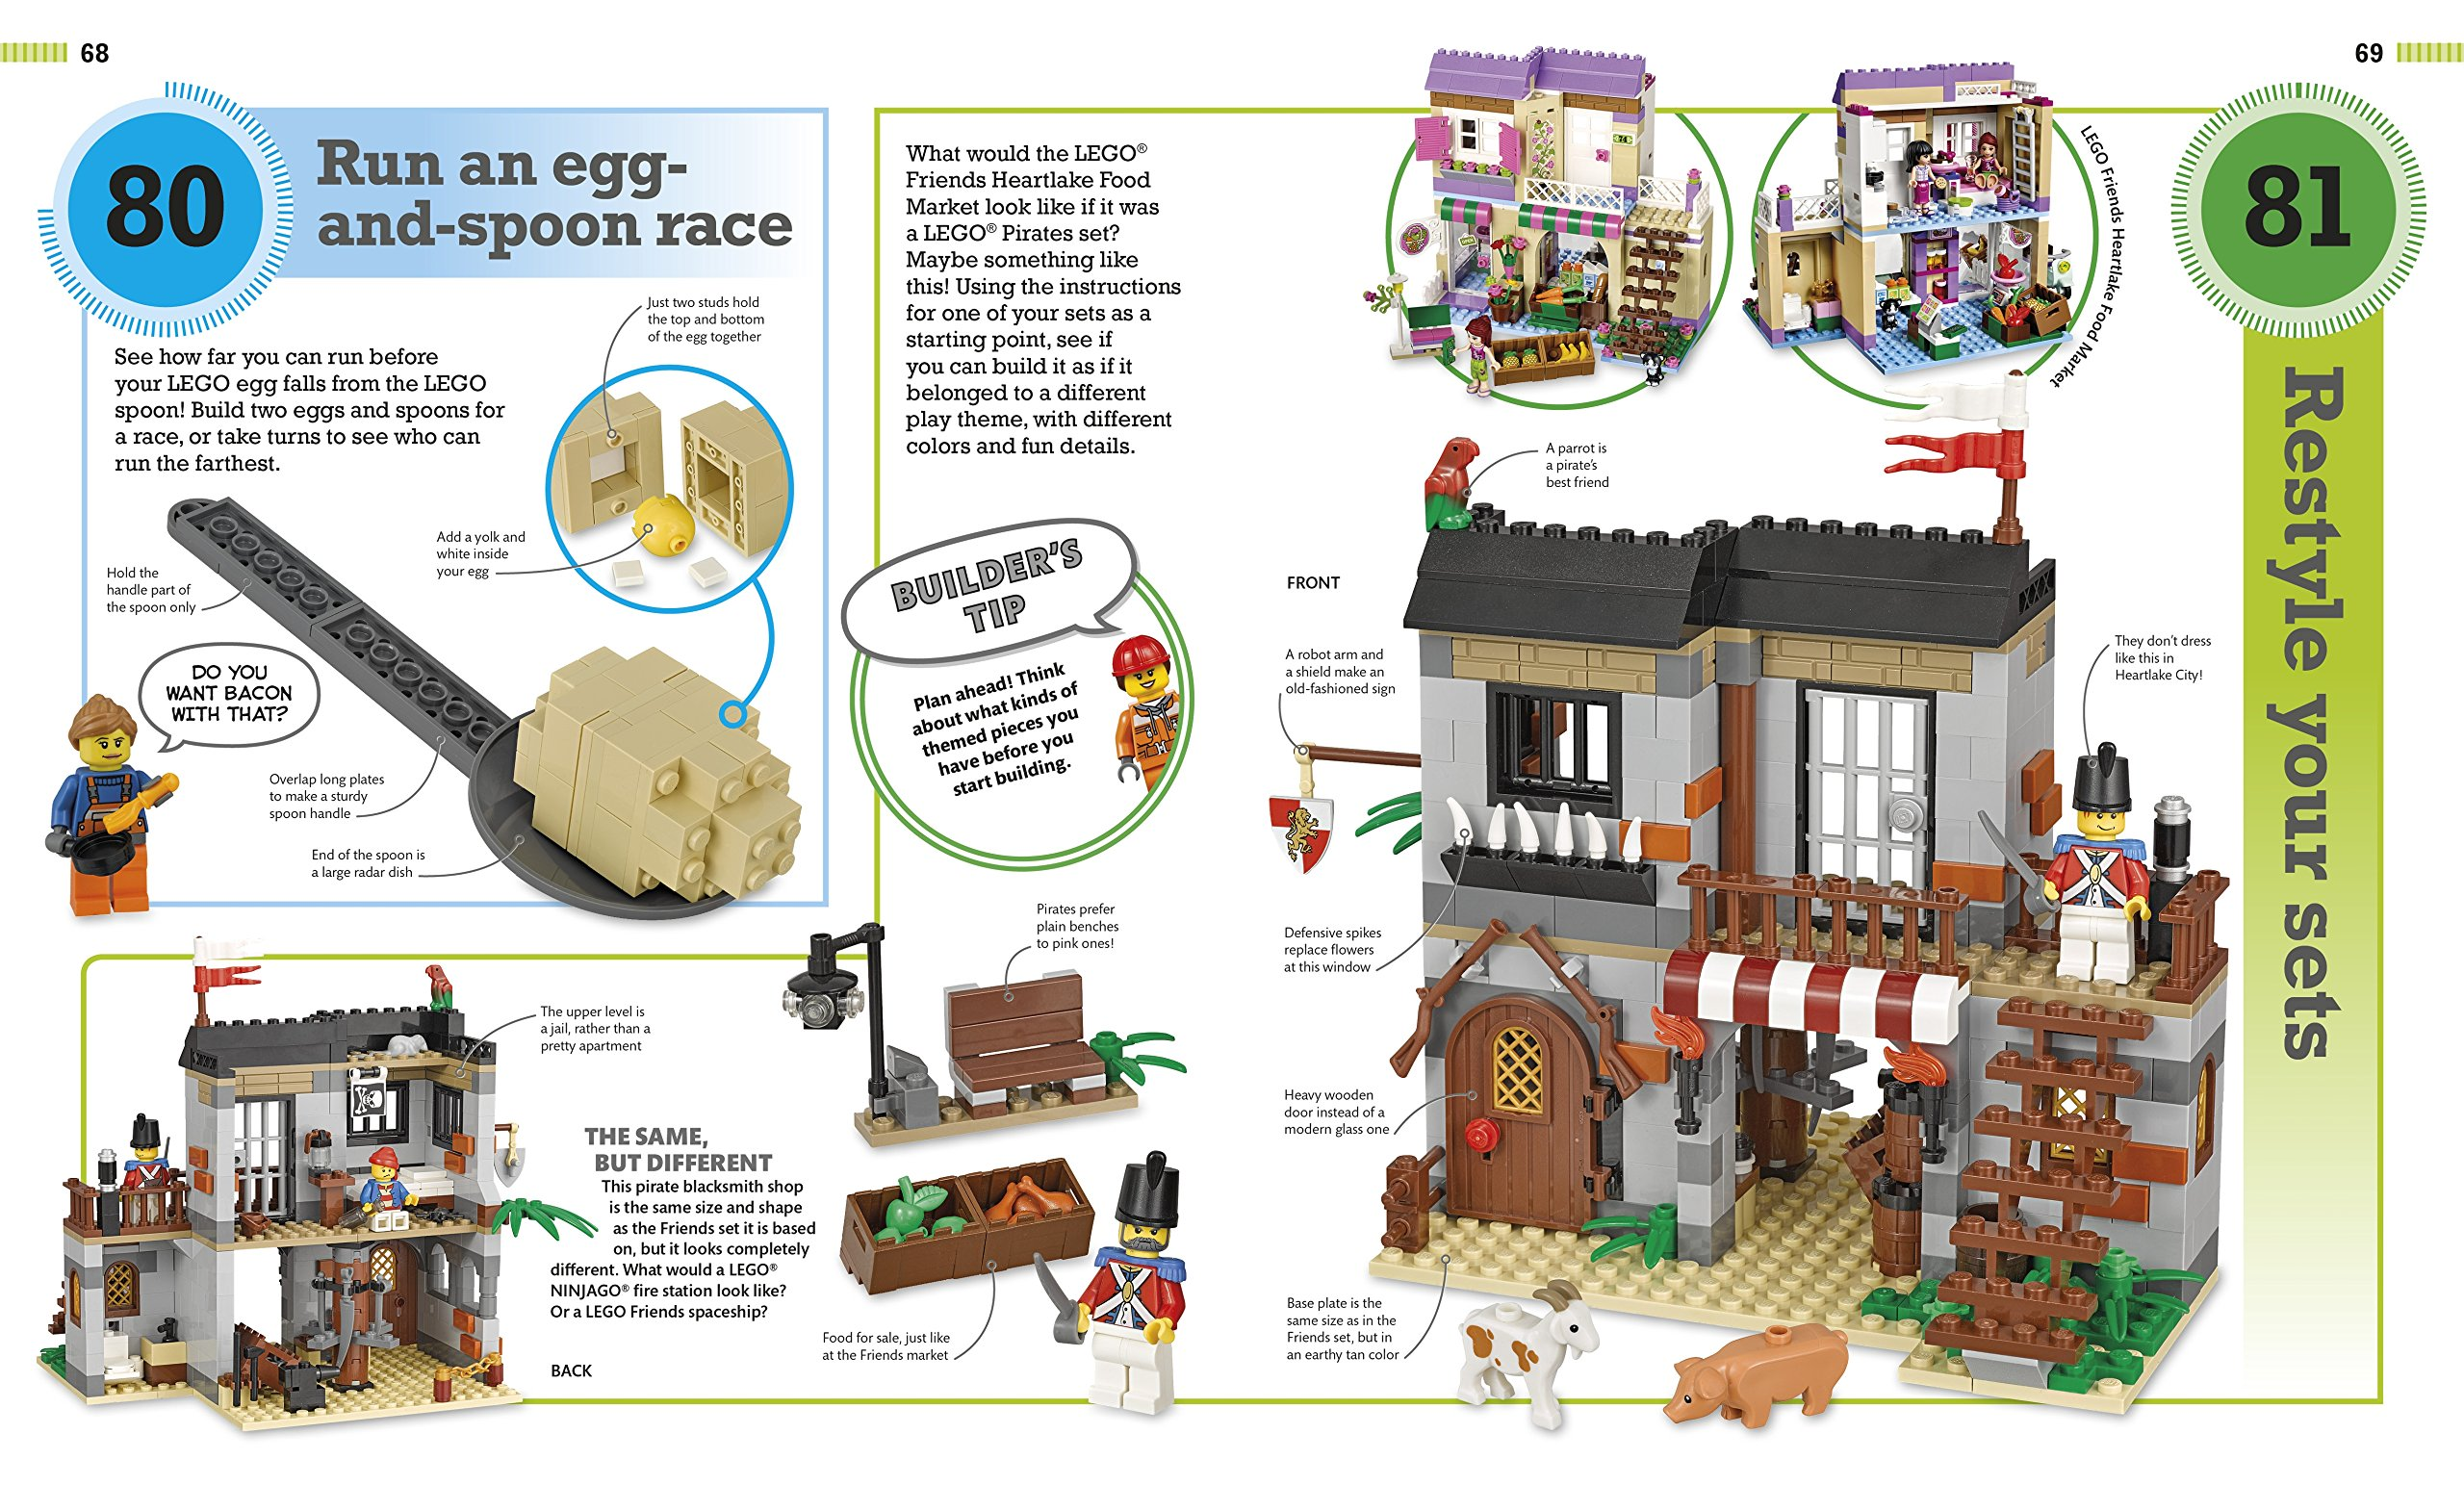 365 Things to Do with LEGO Bricks: Lego Fun Every Day of the Year by DK Publishing Dorling Kindersley (Image #5)